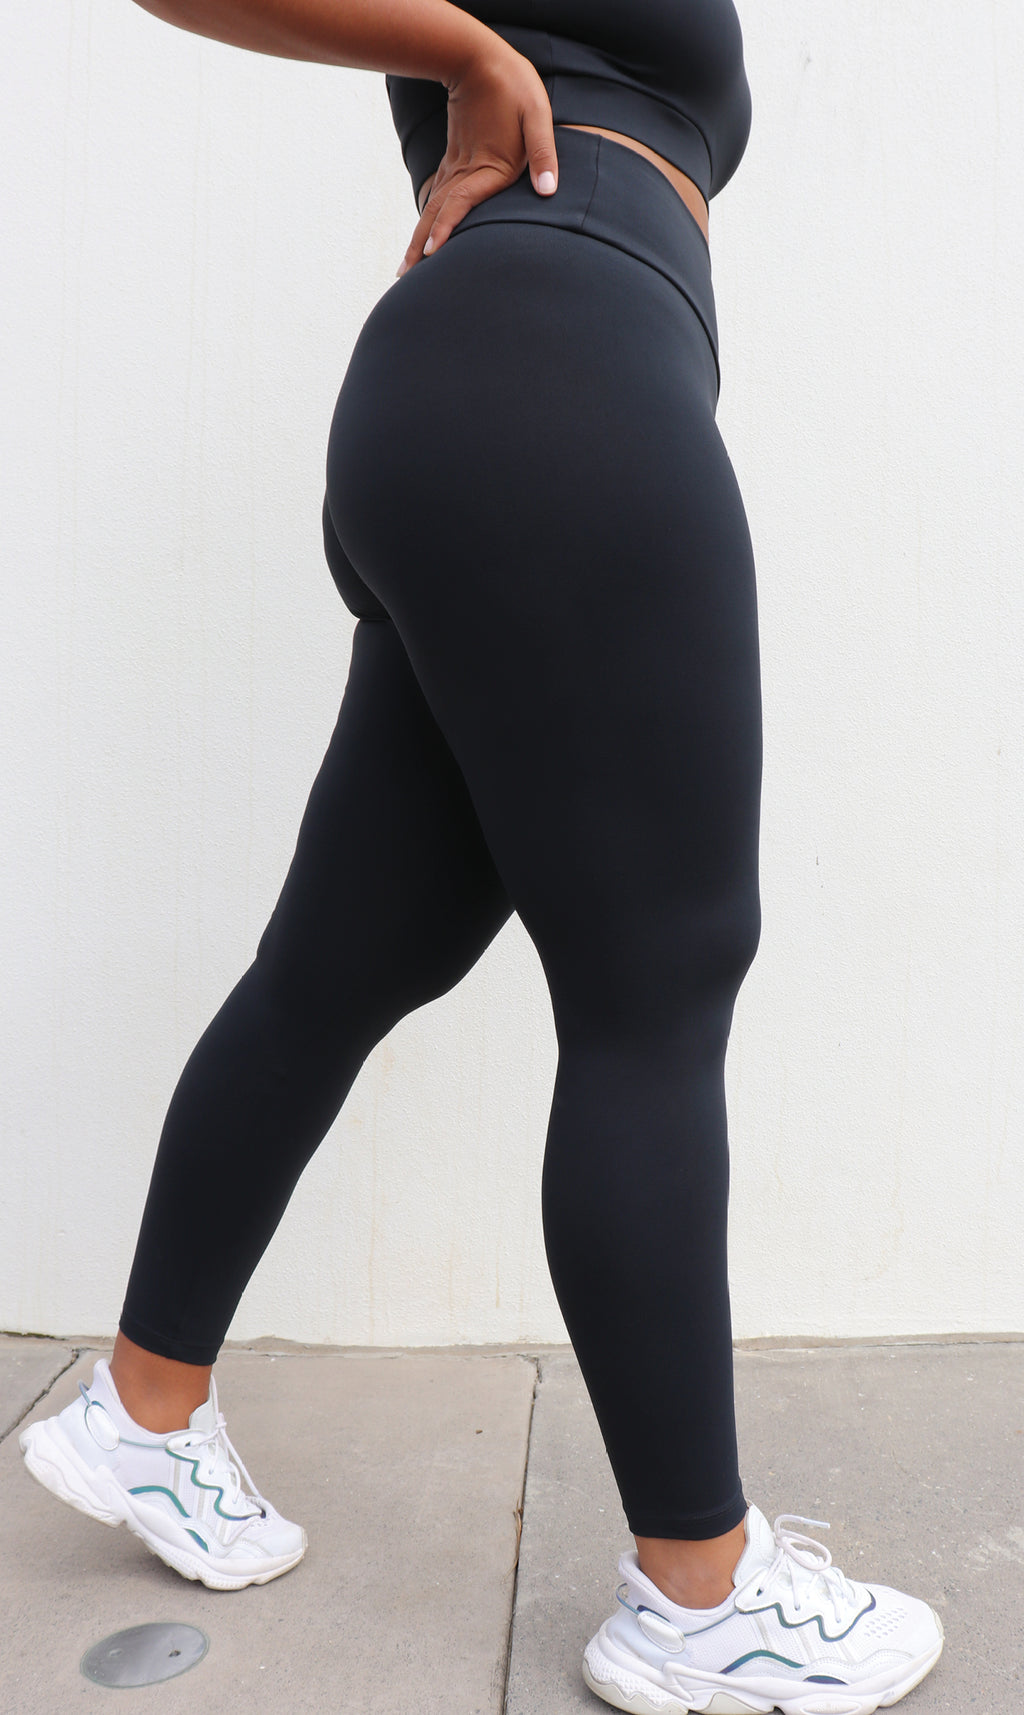 Side View: Girl in midnight body contouring 2.0 ultra high waist leggings & matching bra